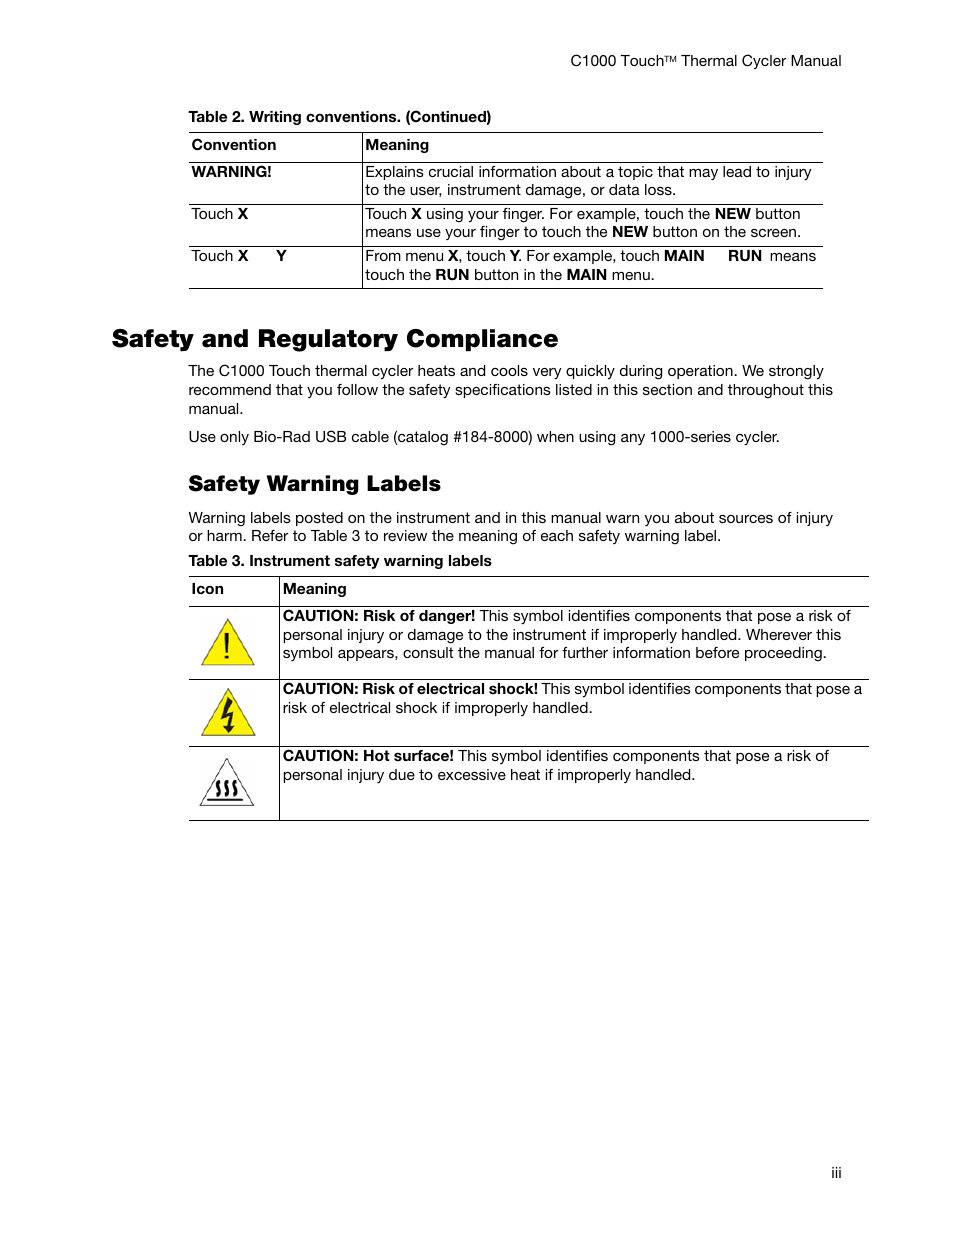 Safety And Regulatory Compliance Safety Warning Labels Bio Rad